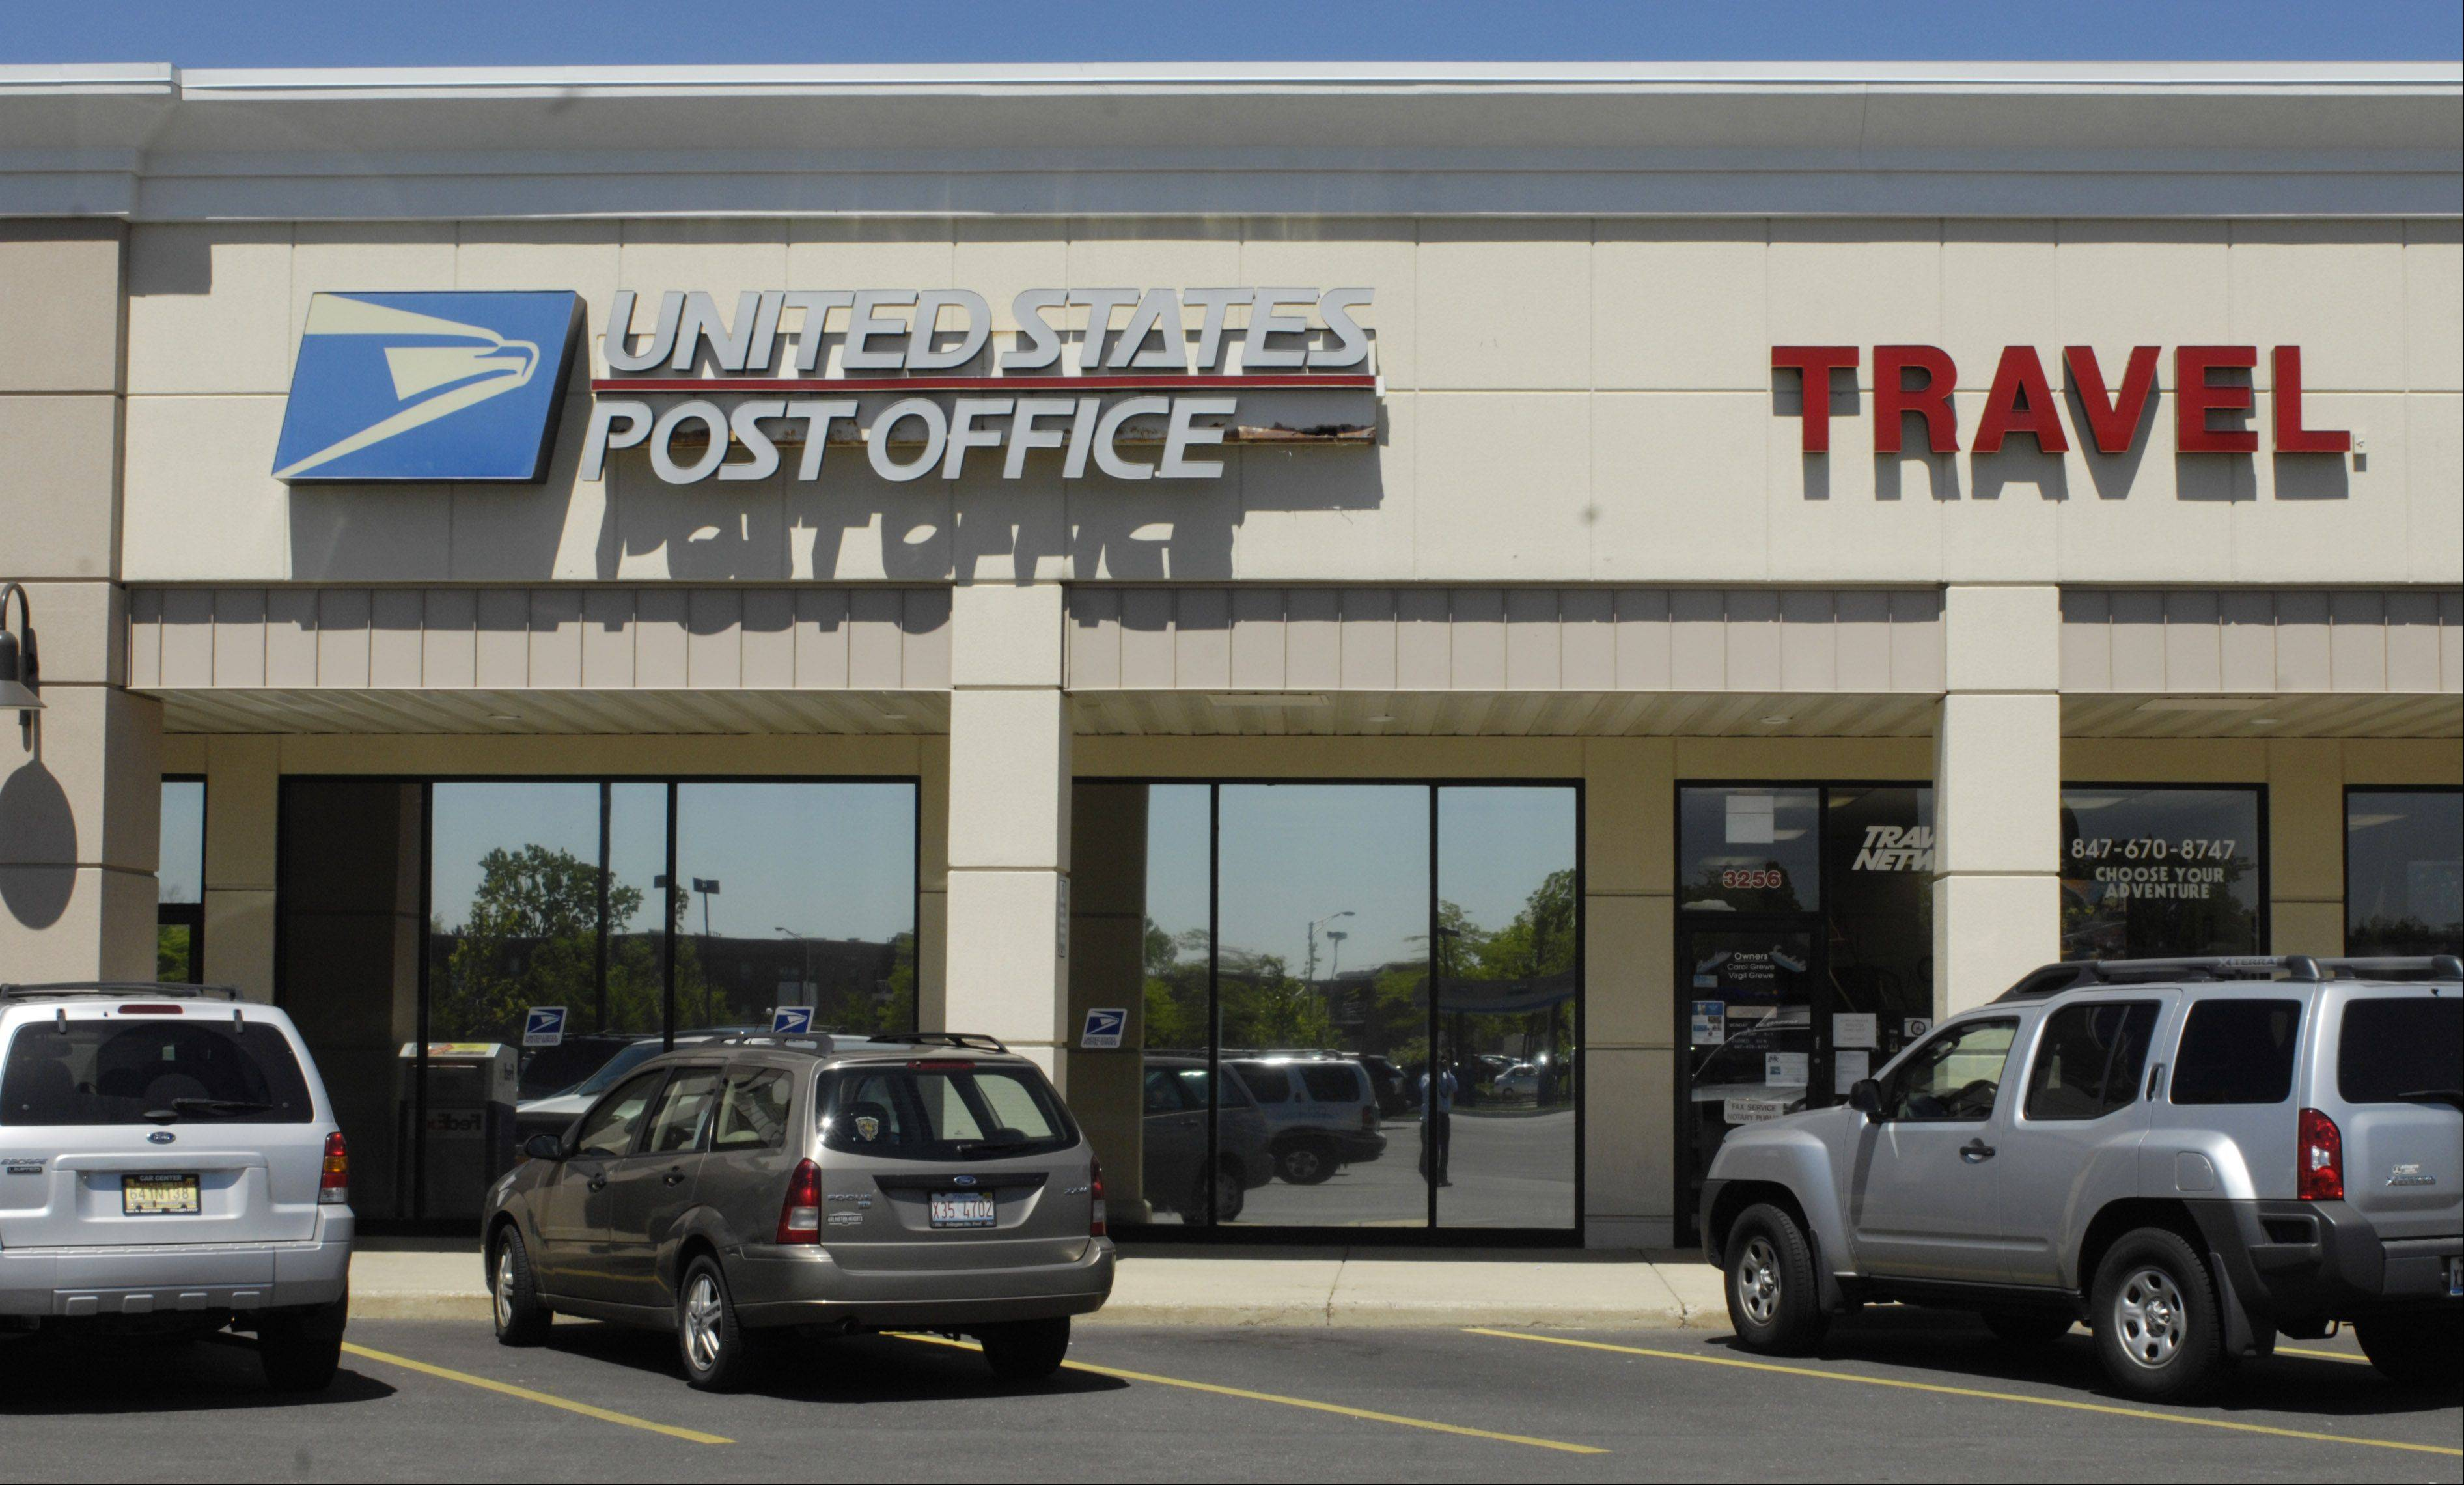 Carol Grewe, president of Travel Network in Rolling Meadows, started a letter-writing campaign in an effort to convince officials not to close the Rolling Meadows Post Office, which is next to her business.